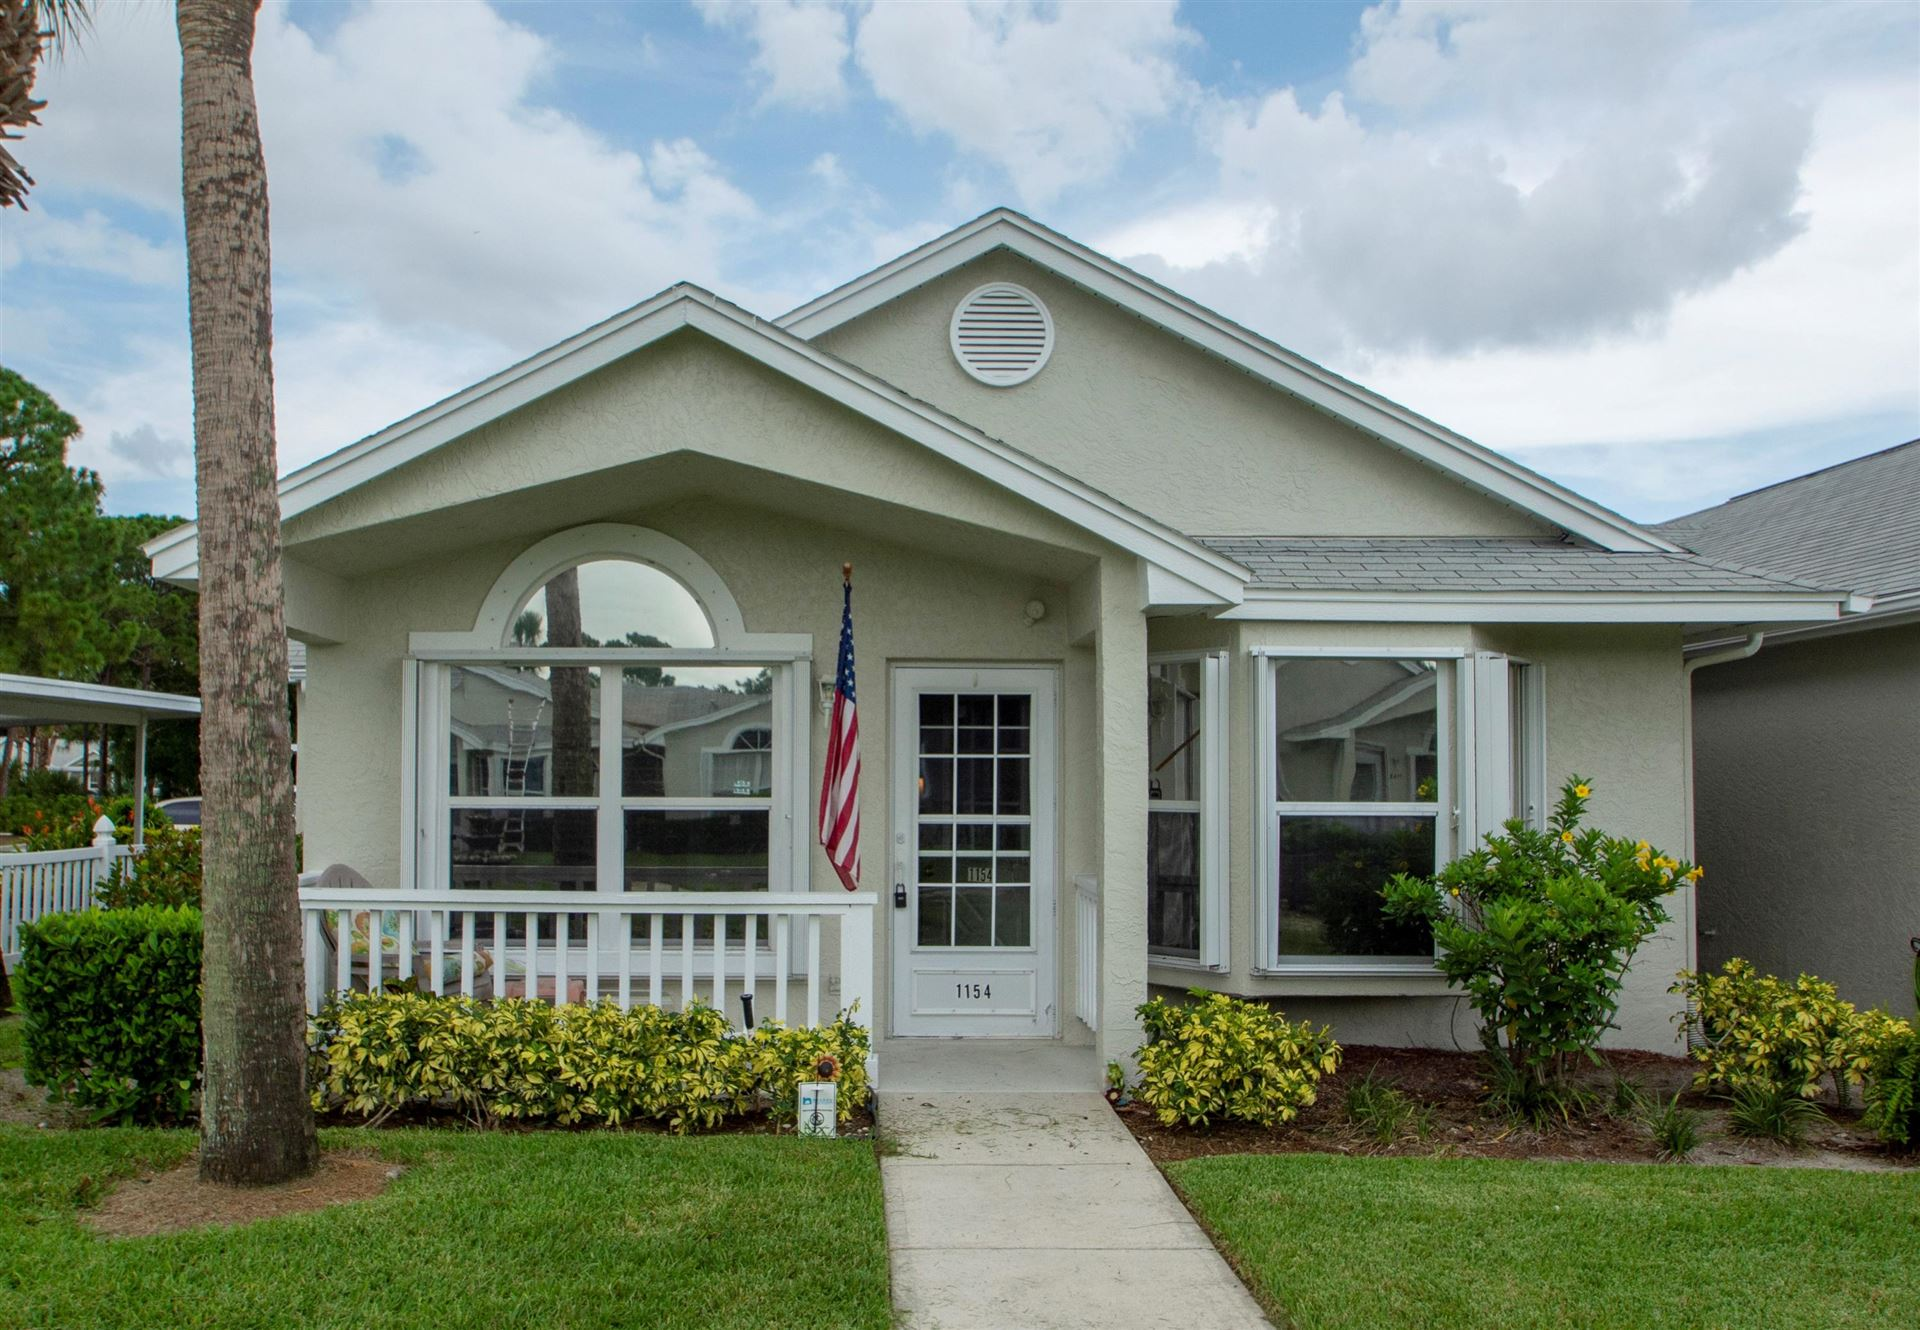 1154 NW Lombardy Drive, Port Saint Lucie, FL 34986 - #: RX-10730042